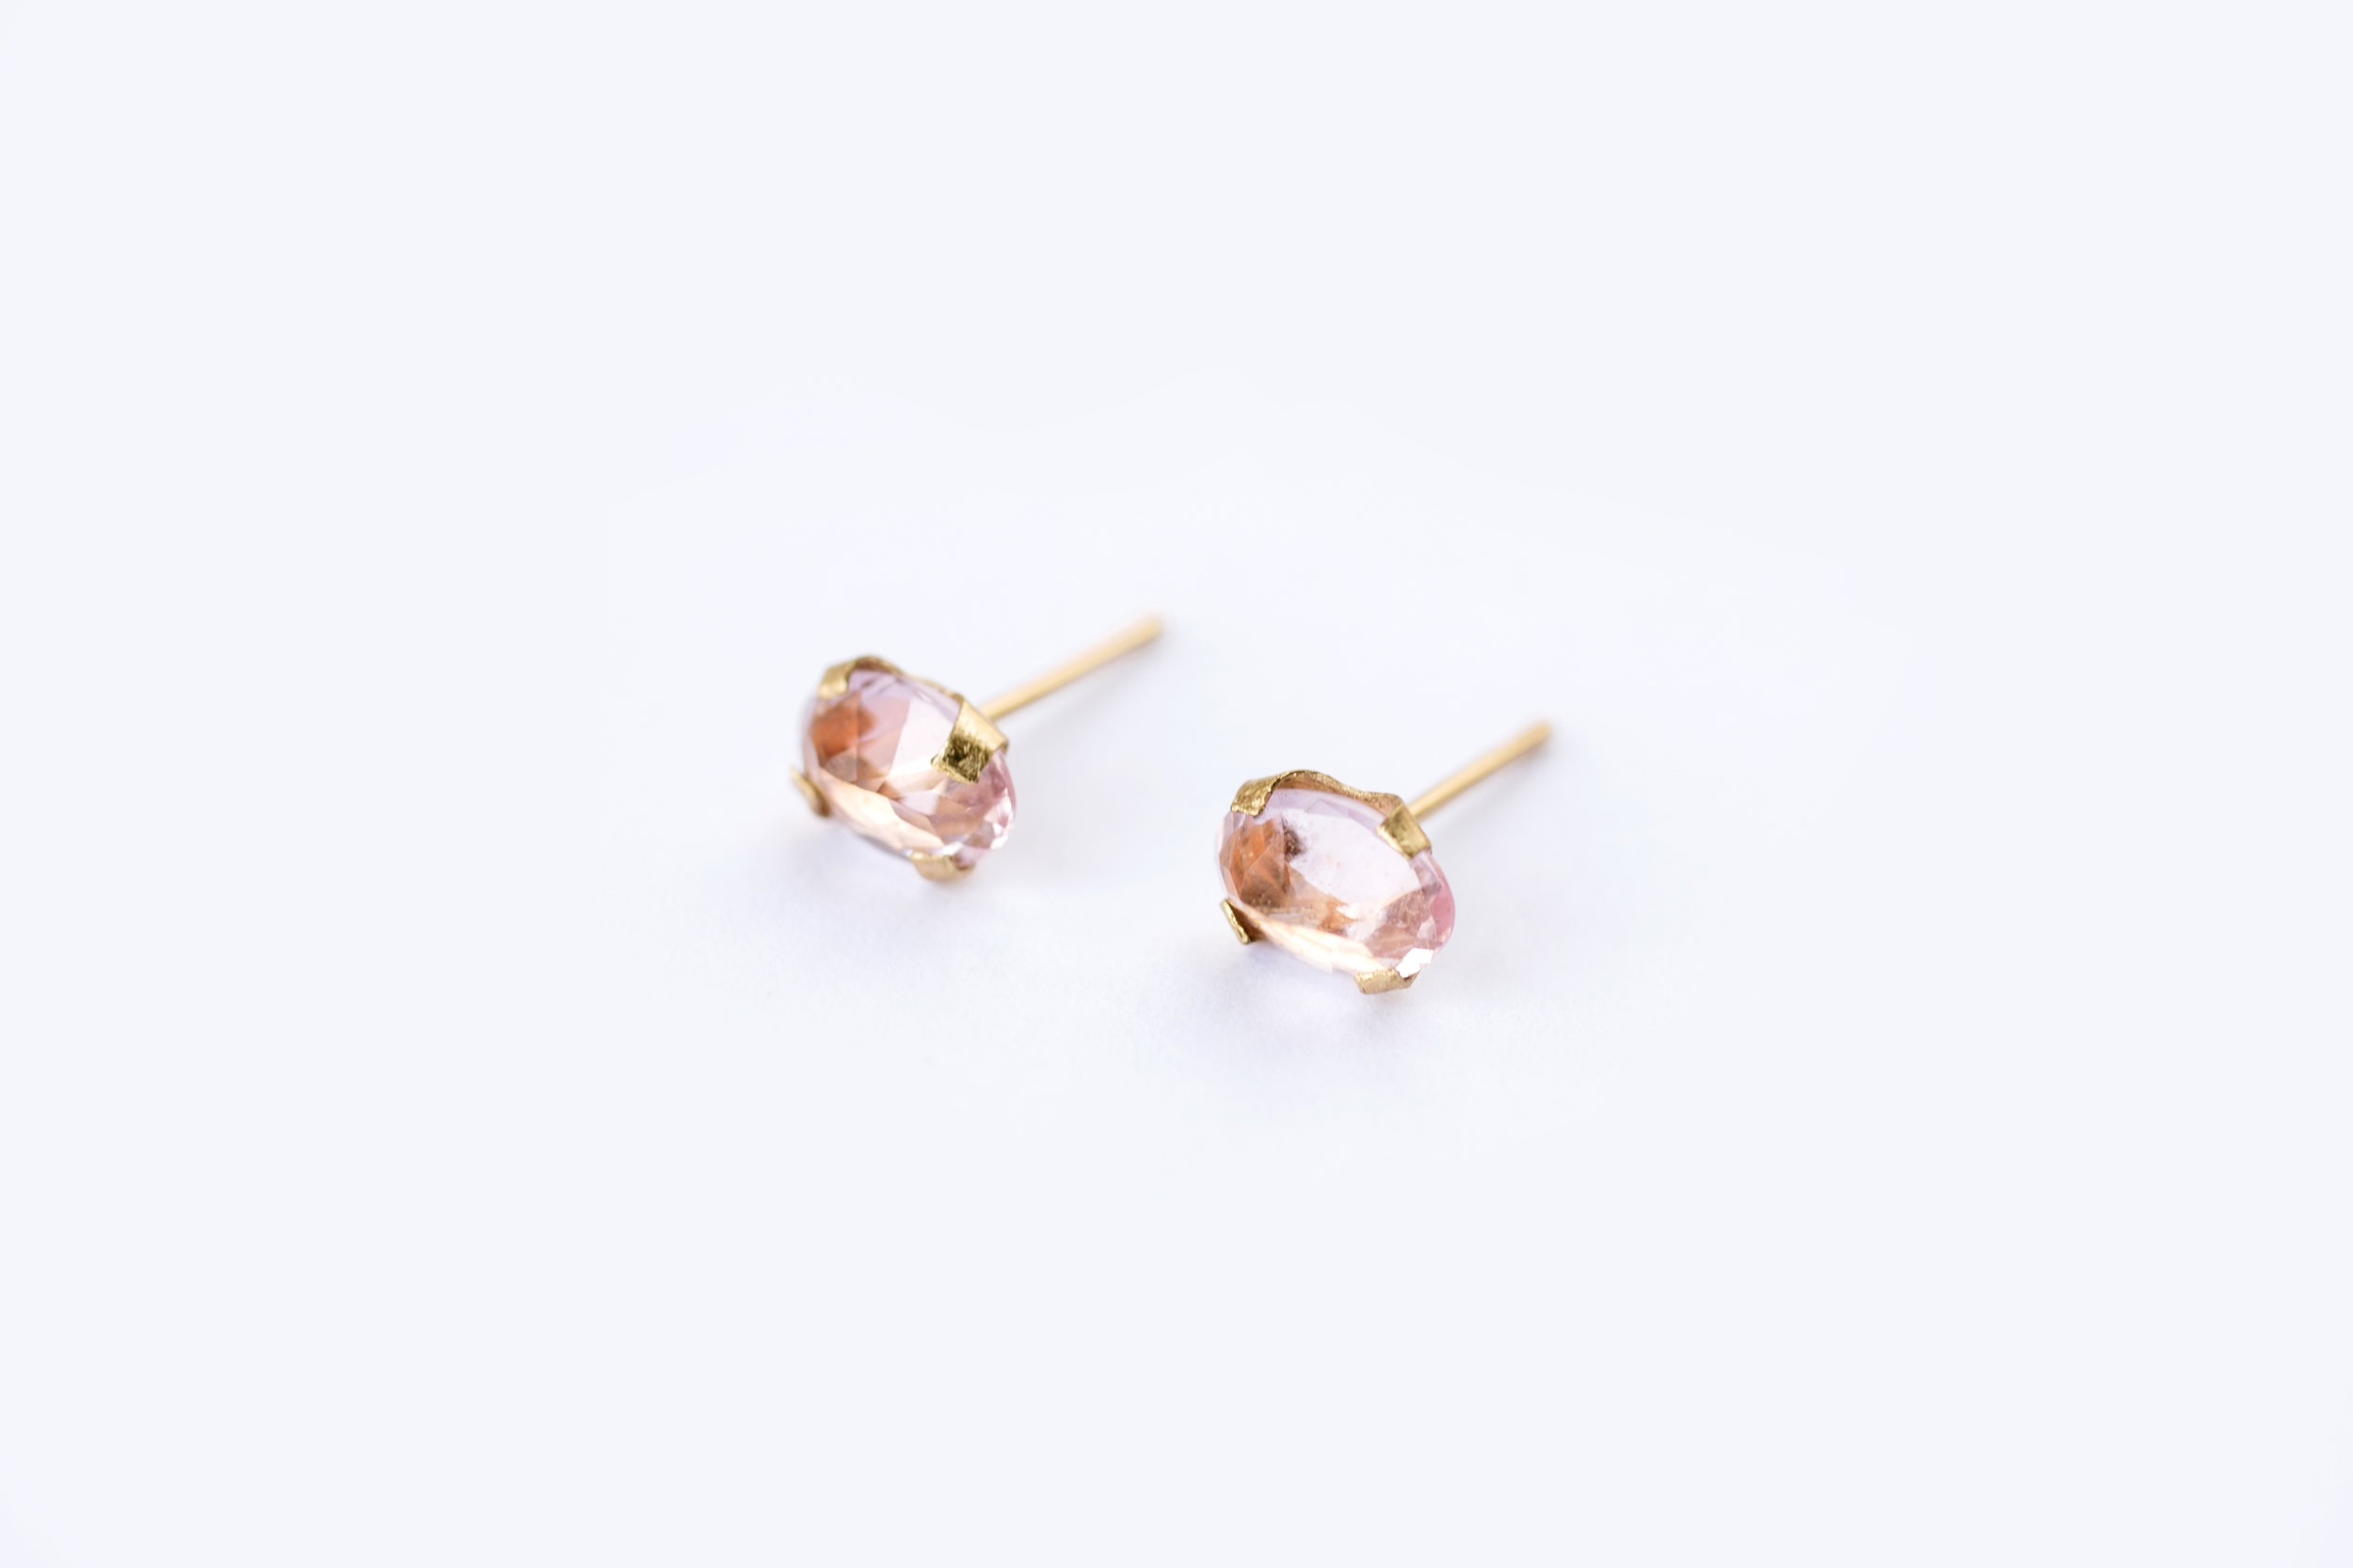 stud salmon buy pink morganite earring prodetail carat in gold rose